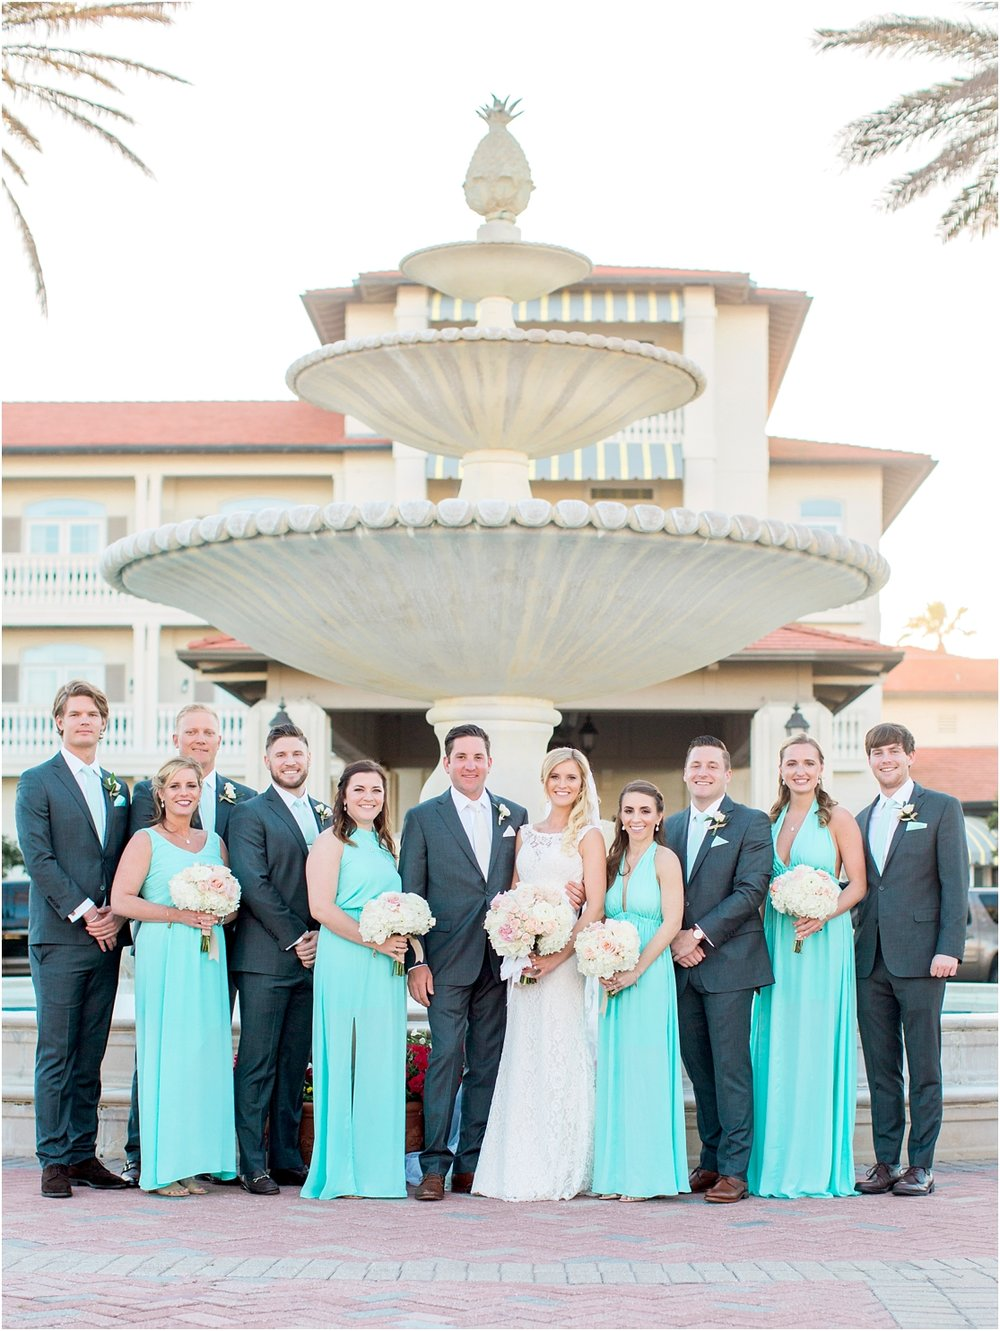 Lisa Silva Photography- Ponte Vedra Beach and Jacksonville, Florida Fine Art Film Wedding Photography- Wedding at the Ponte Vedra Inn and Club_0058.jpg